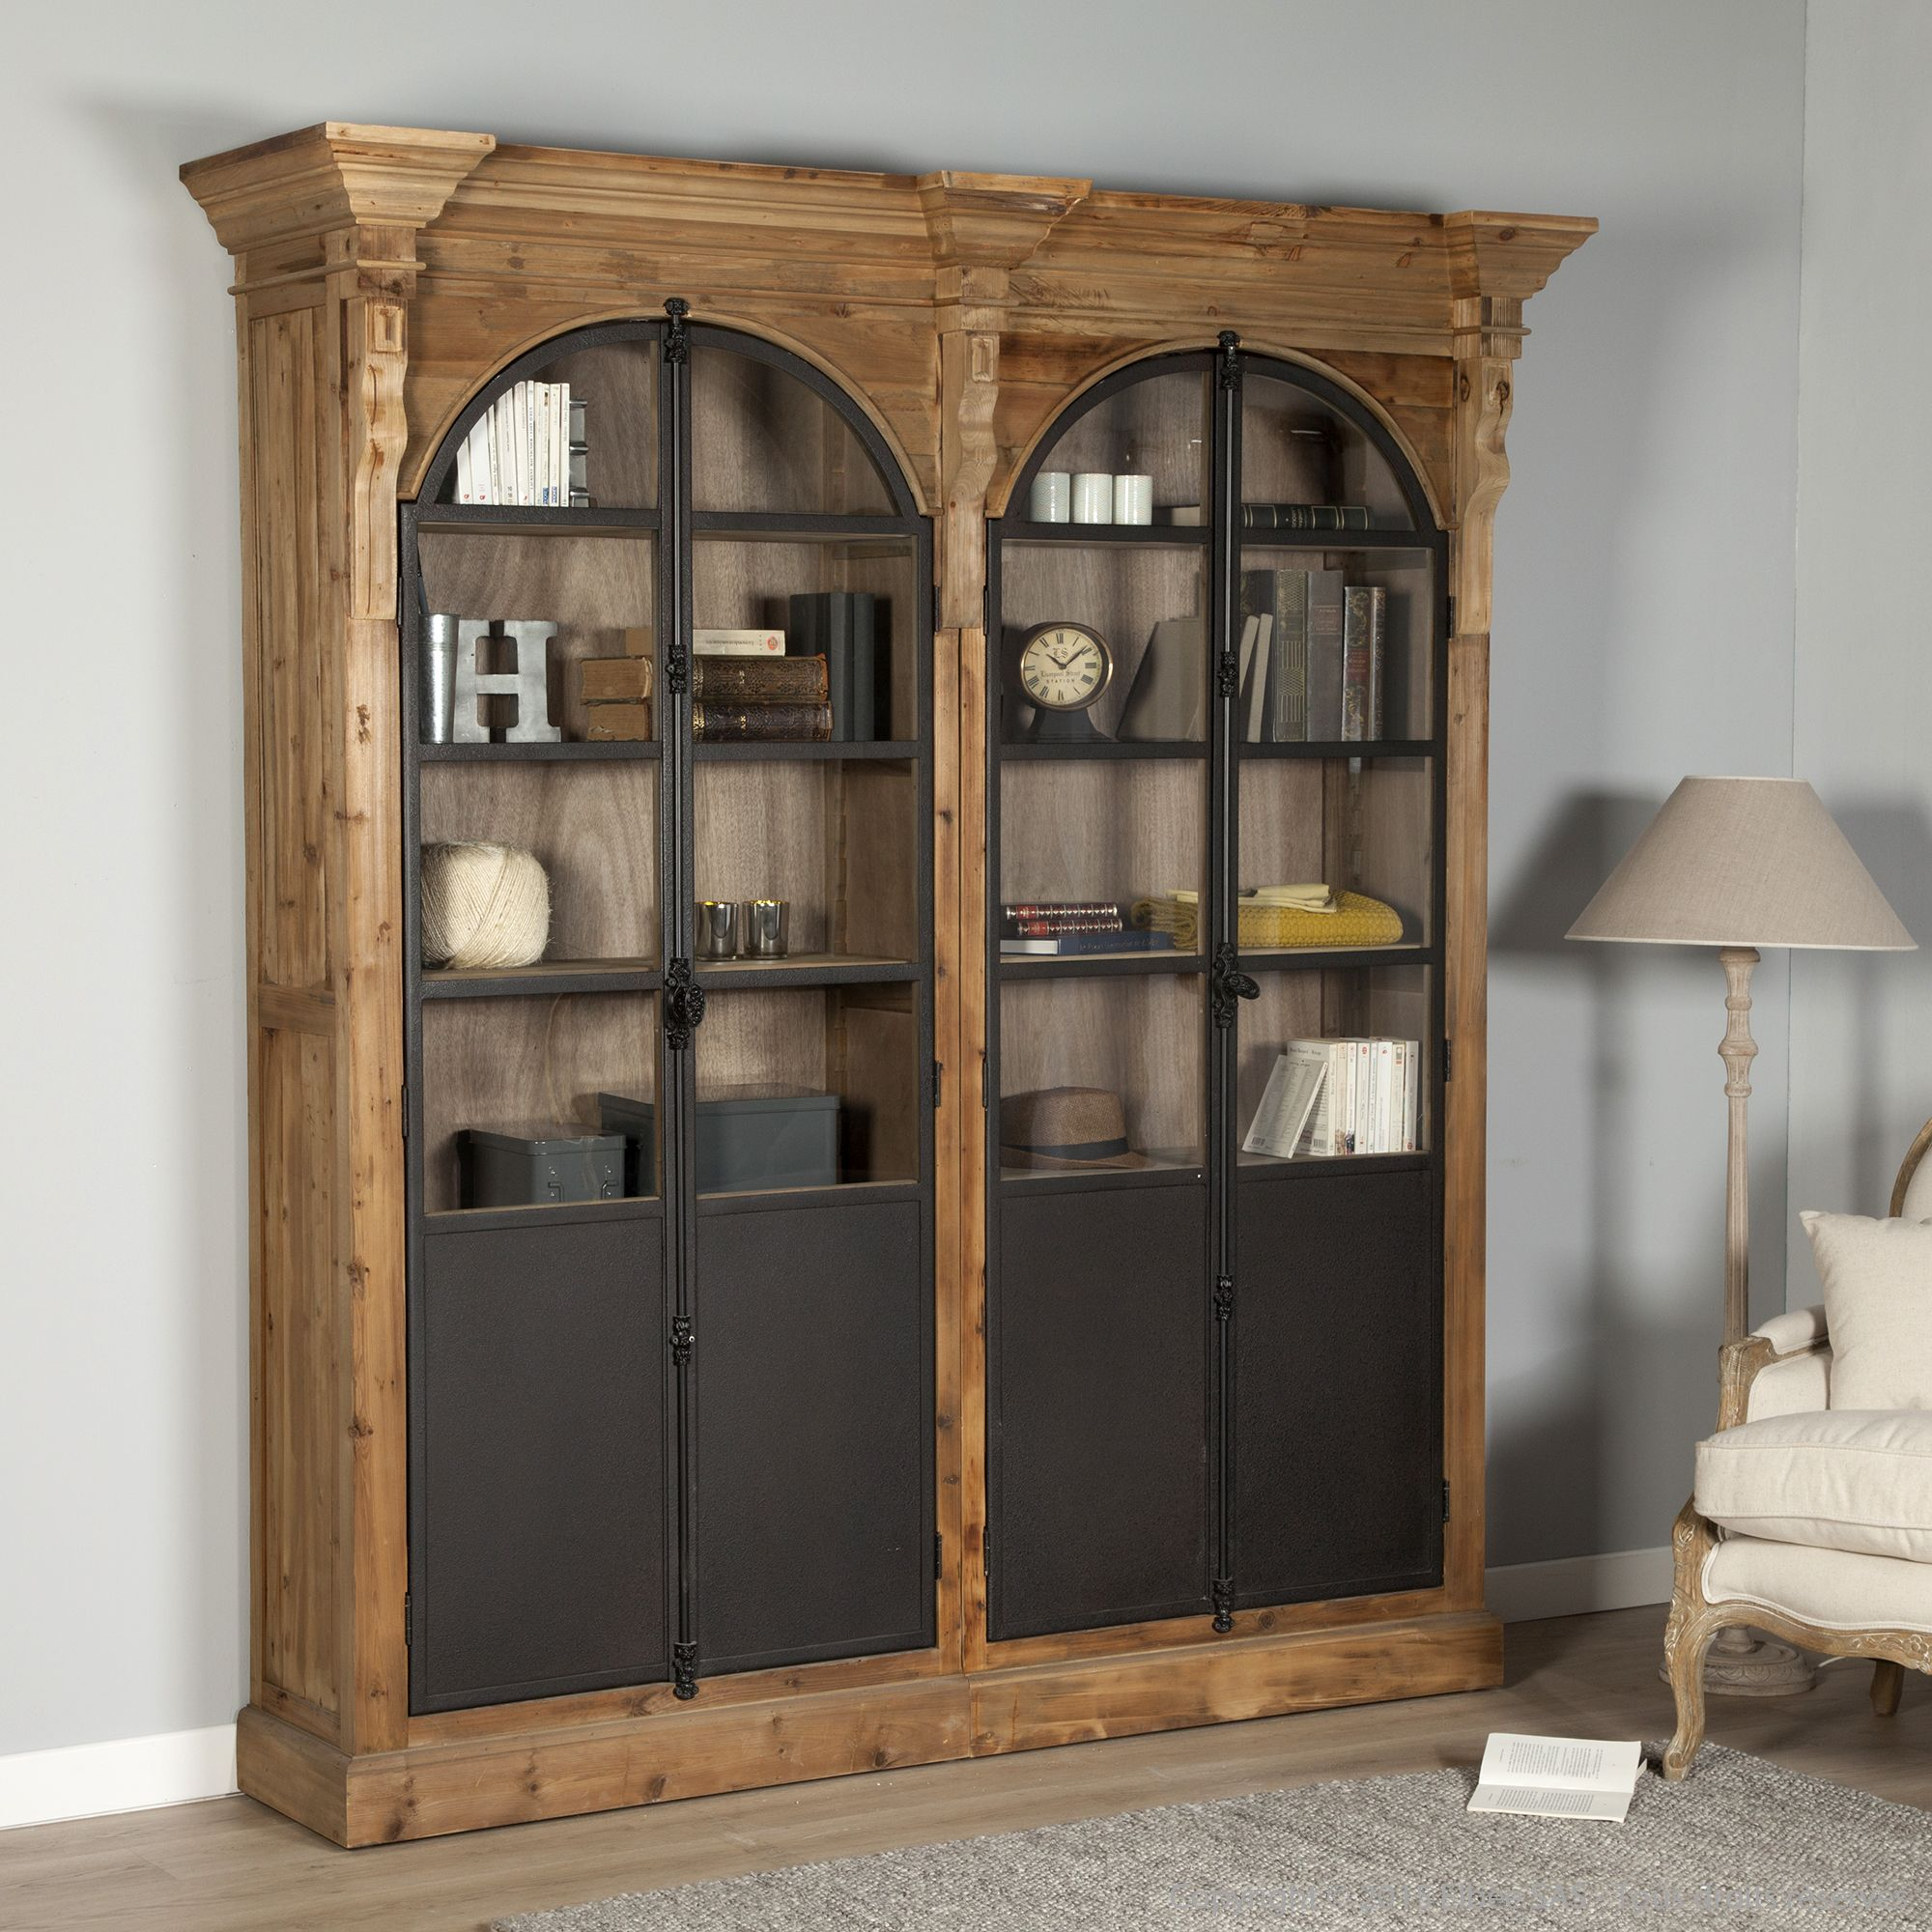 biblioth que en bois avec portes vitrines en m tal. Black Bedroom Furniture Sets. Home Design Ideas